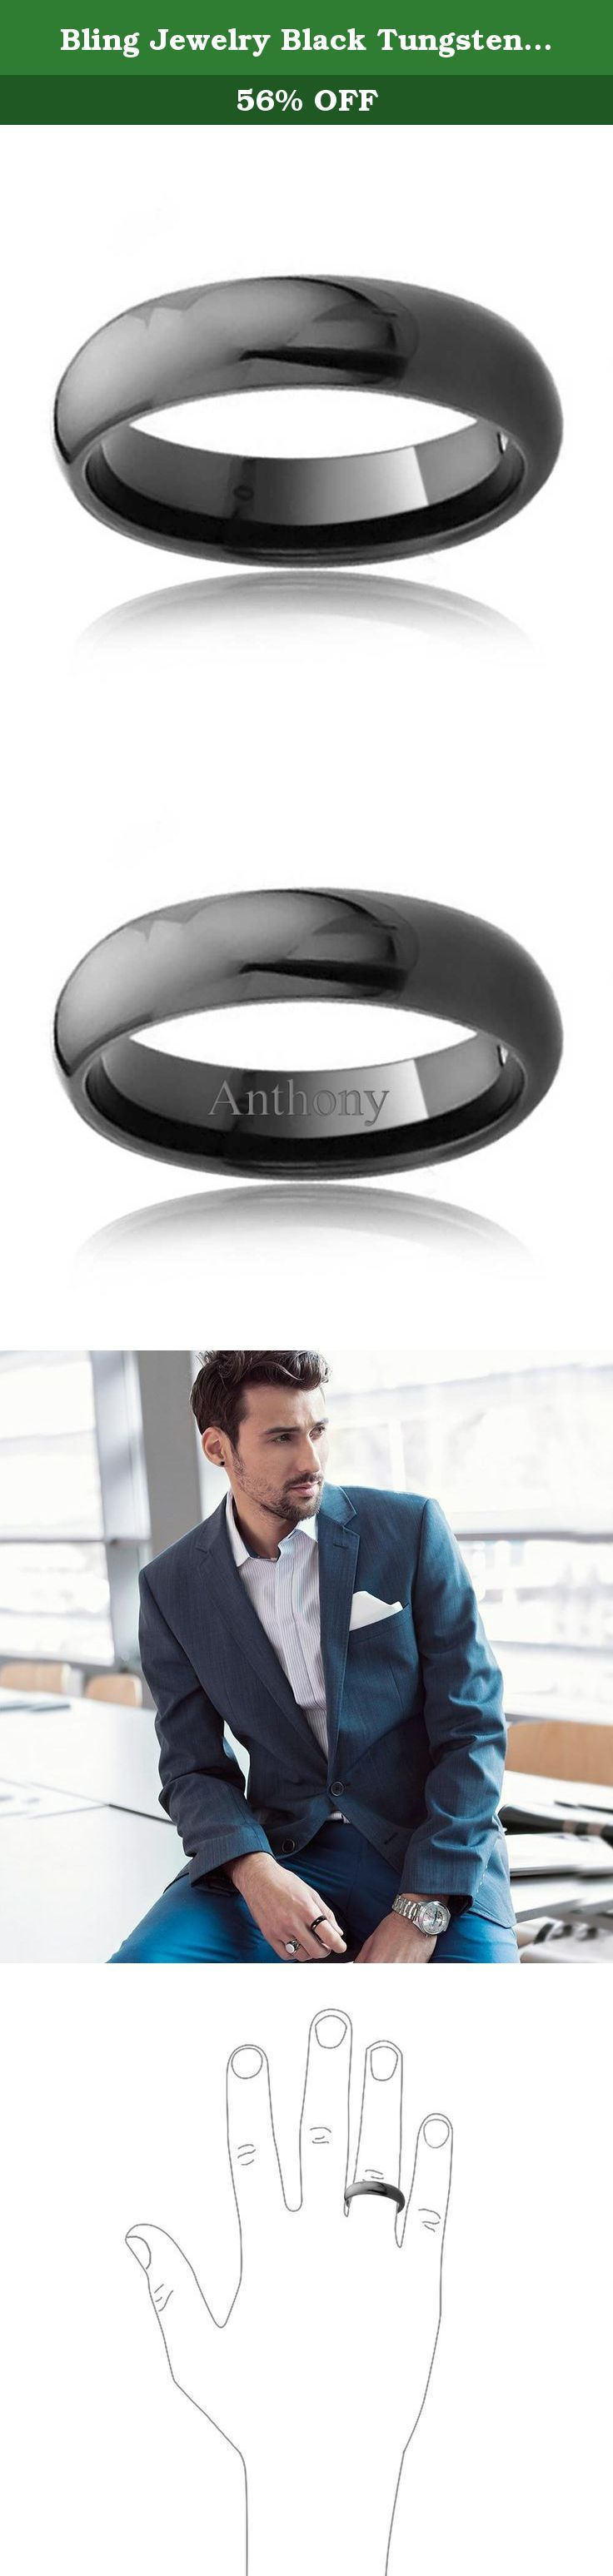 Bling Jewelry Black Tungsten Dome Wedding Band Ring 6mm. This edgy looking black tungsten domed wedding band is an excellent alternative to the more traditional choice of wedding ring. With a splendid high shine along with the strength of tungsten, this 6mm tungsten band will glimmer for years. These mens black rings are made from tungsten which is stronger than most metals and has a tarnish resistant quality. If you wish to show your eternal devotion to a loved one, these unisex black…